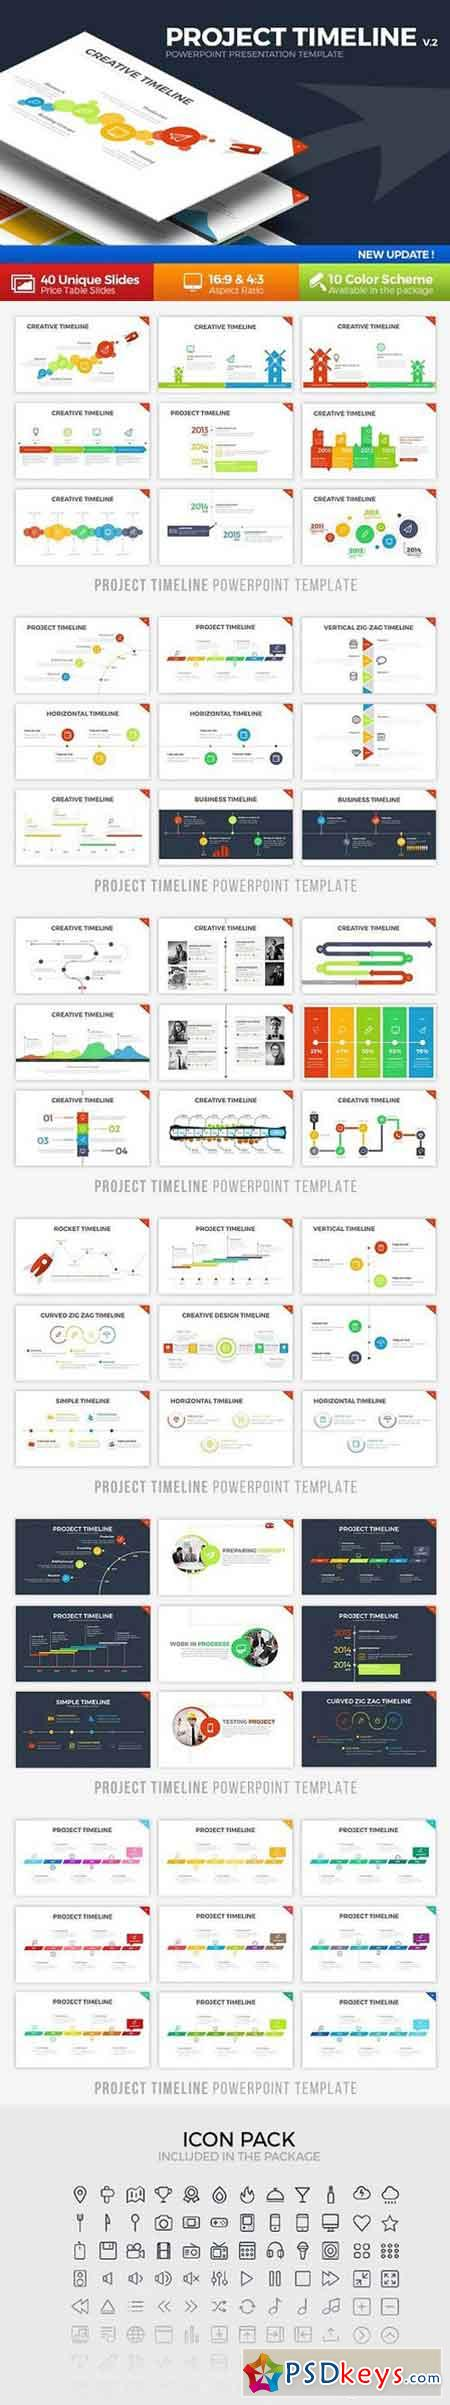 project timeline powerpoint